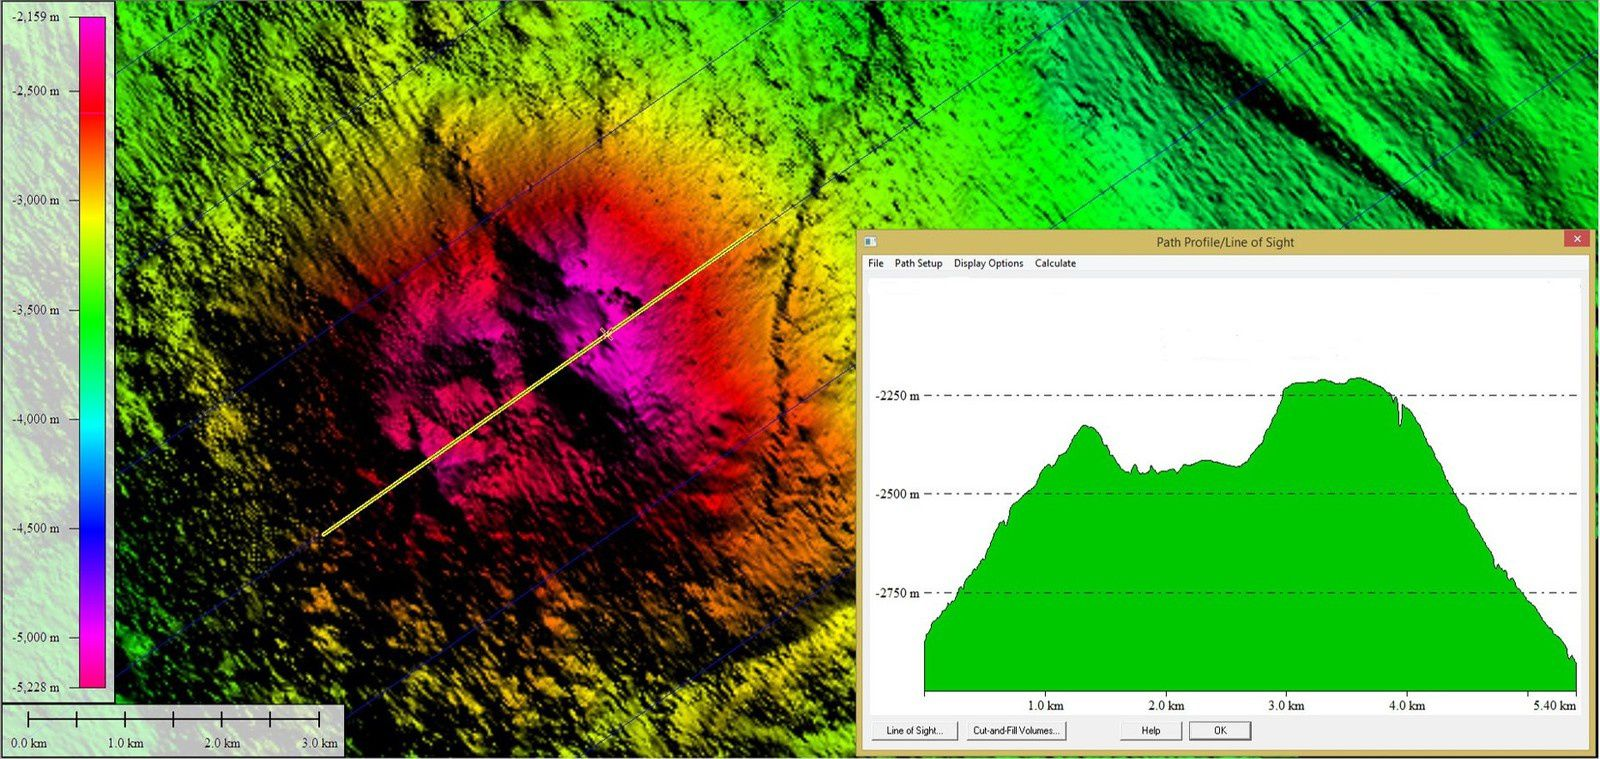 Discovery of Intrepid volcano by the probe connected to Fugro Discovery - Probe move  from right to left following the yellow line - in the box, the profile set of the volcano. - Doc. ATBS